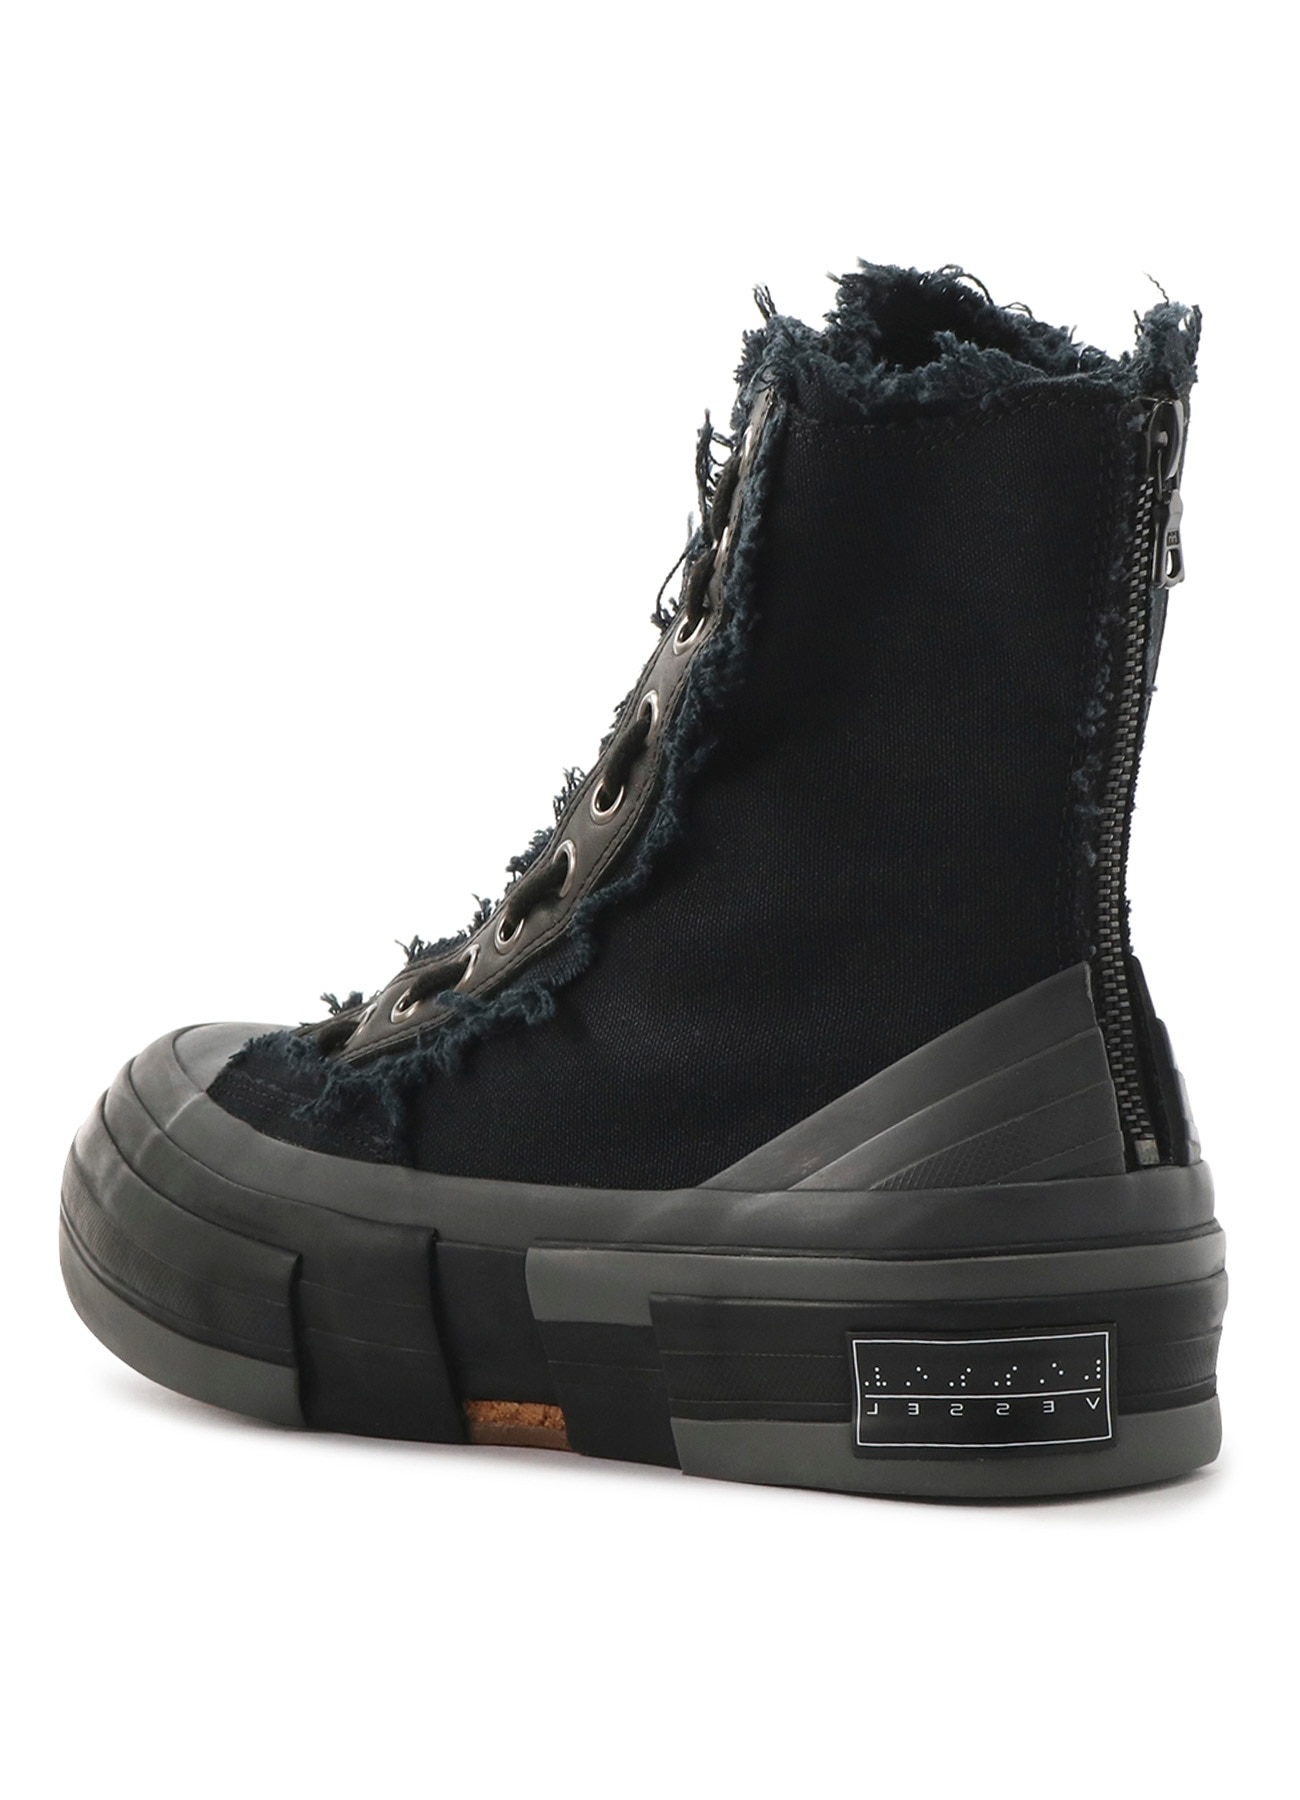 C/CAMPUS BK ZIPPER HIGH TOP SNEAKER